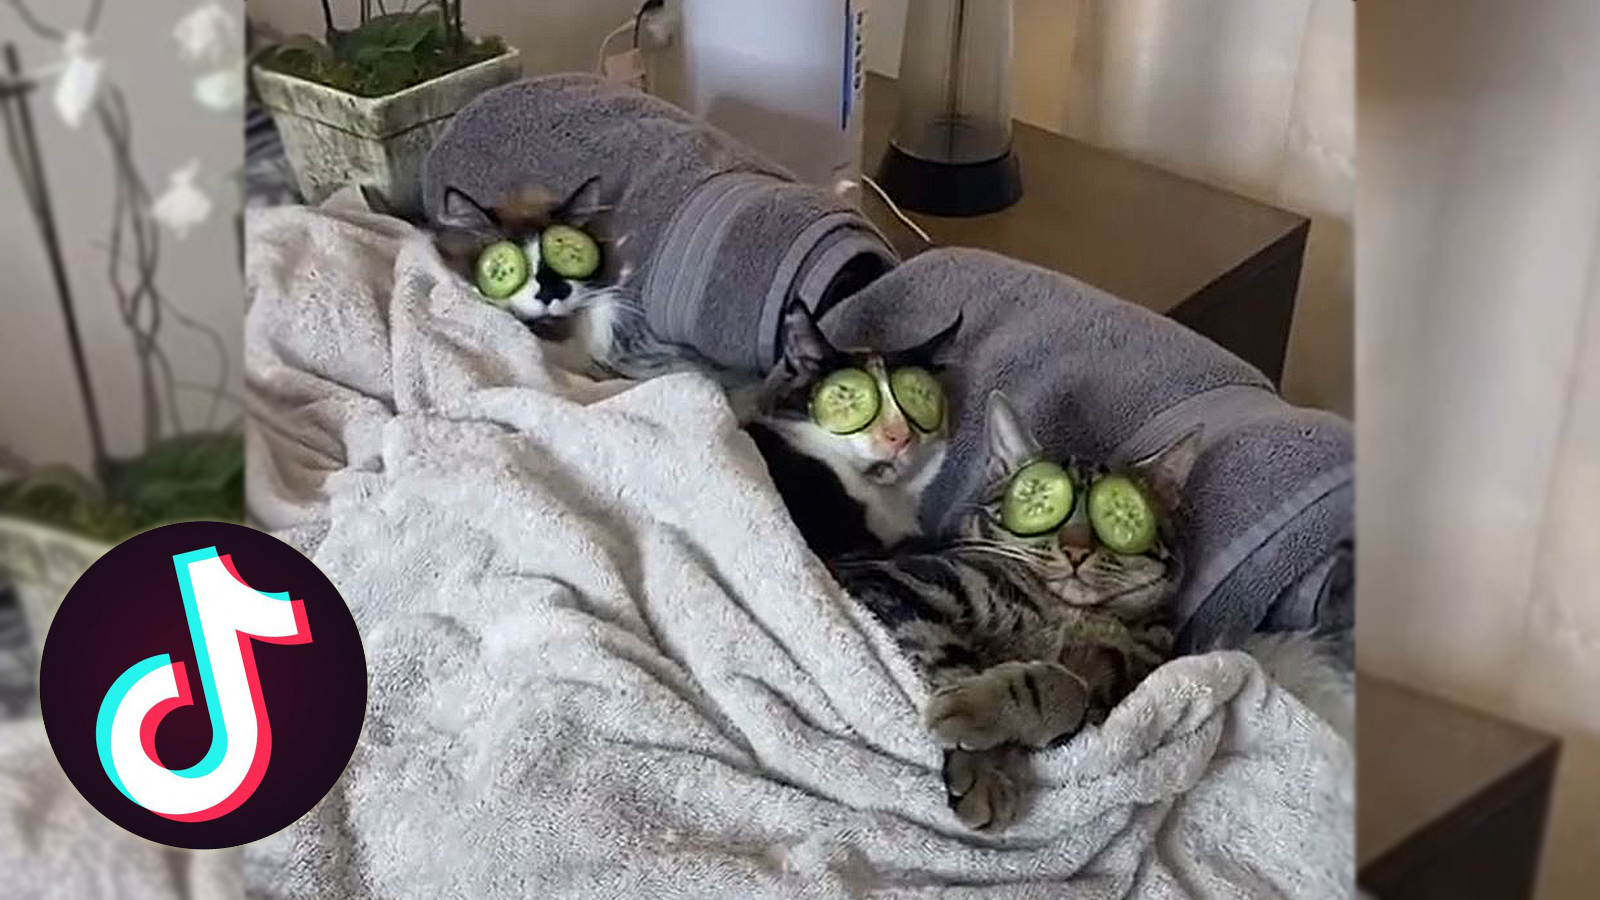 Dontstopmeowing go viral on TikTok for cat spa day videos